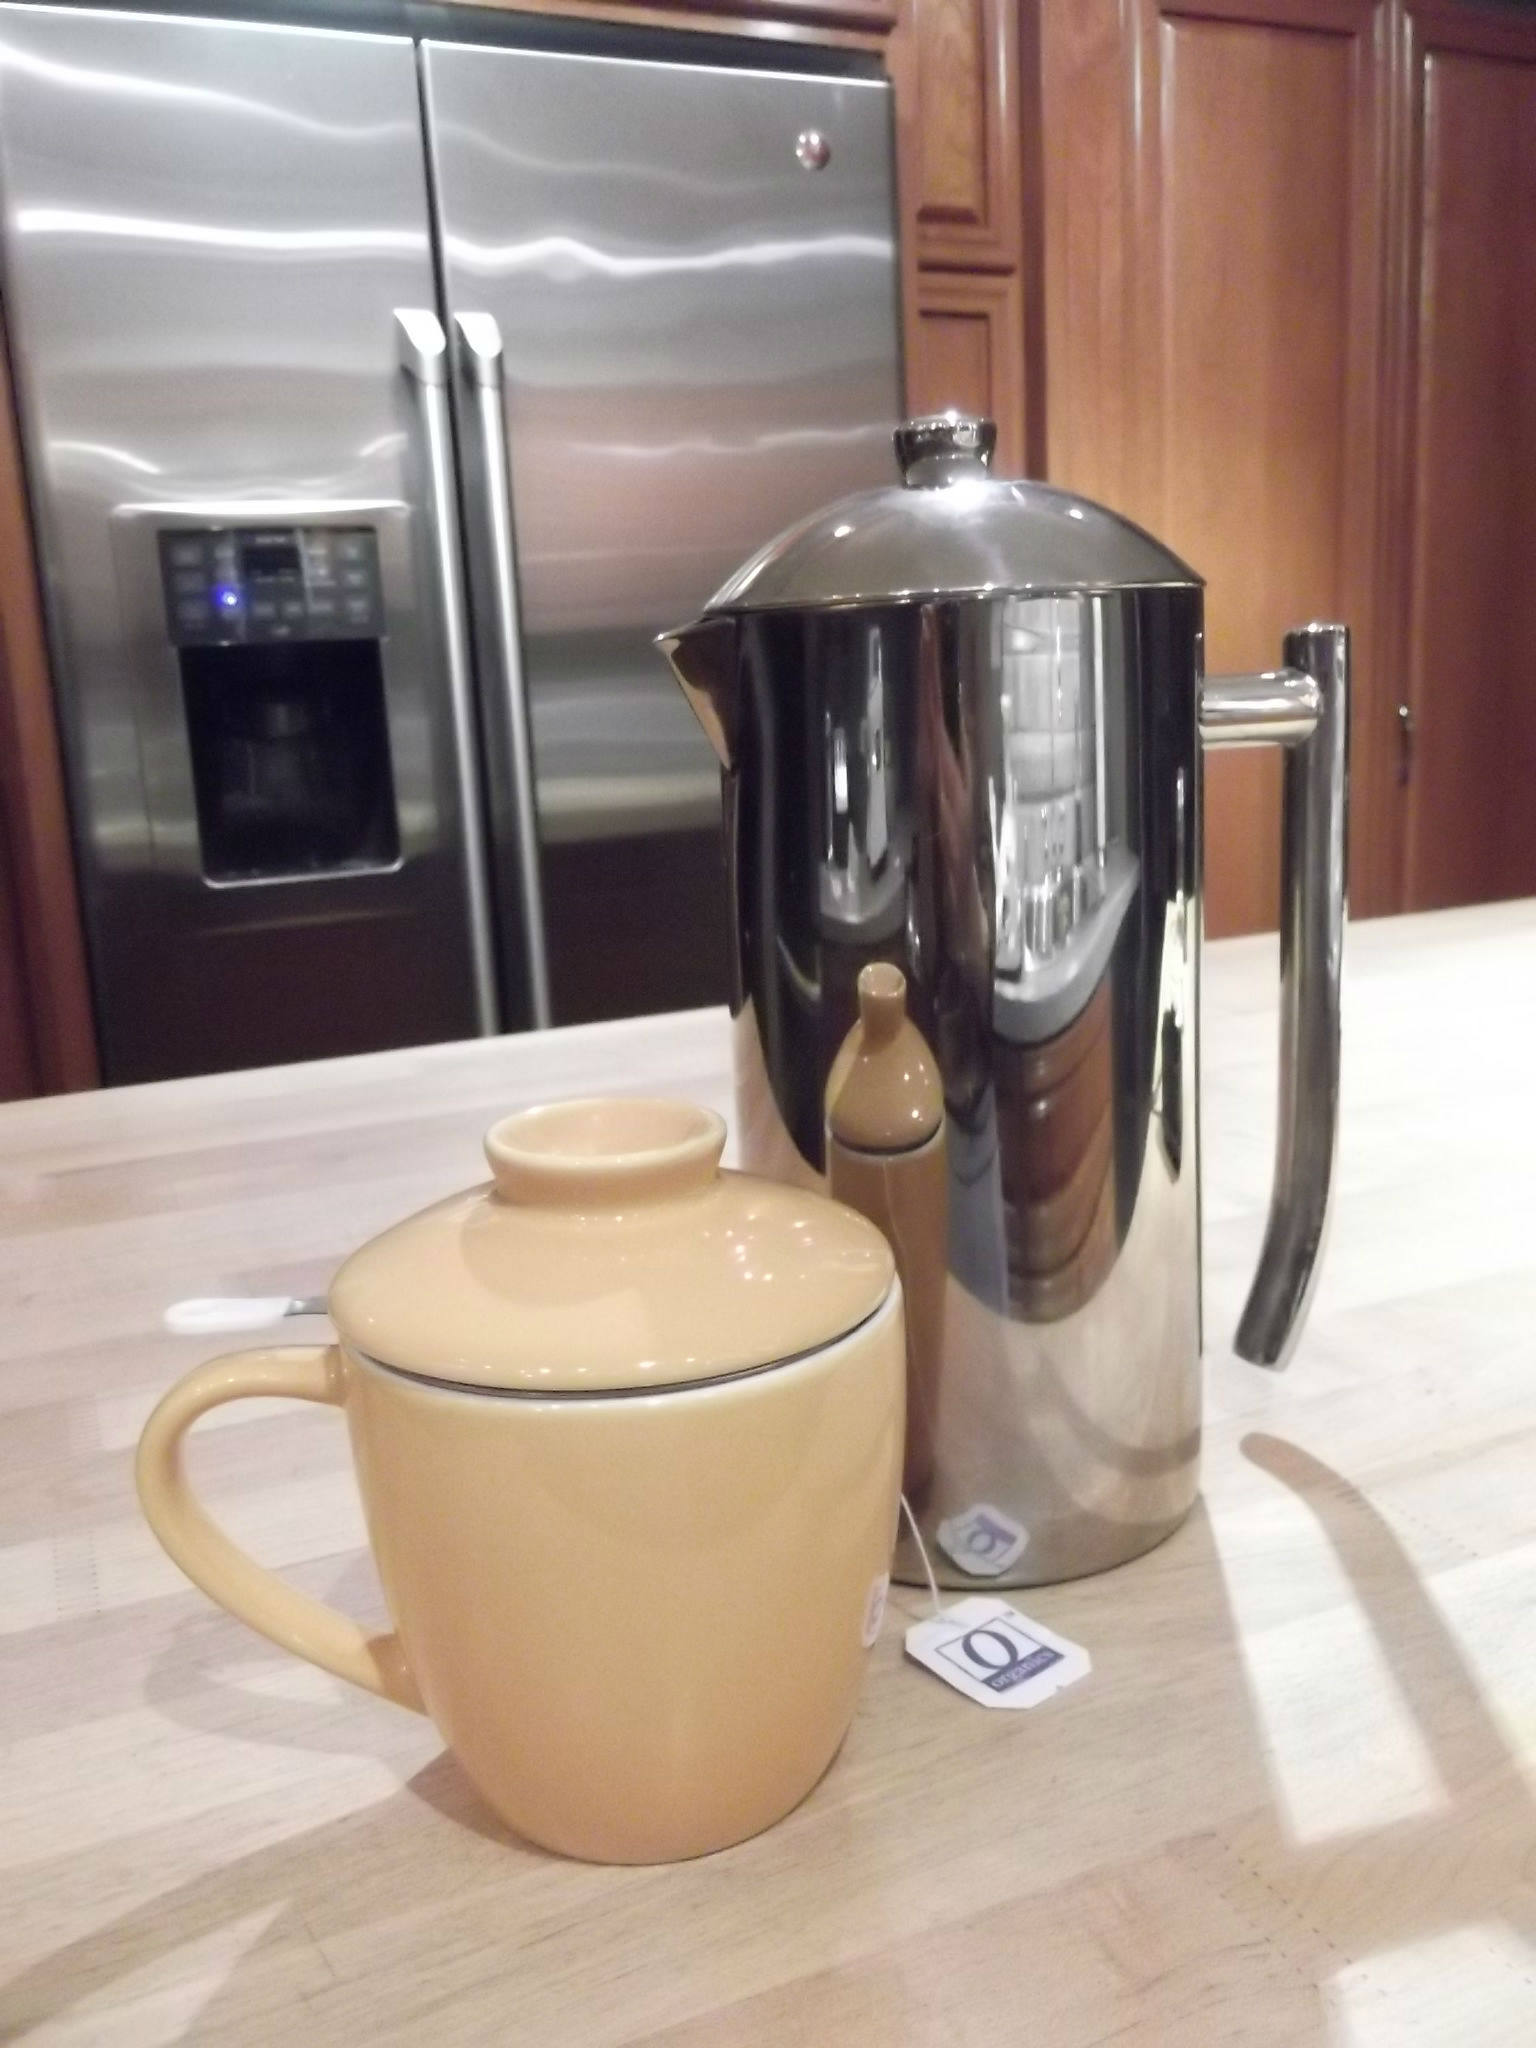 Coffee Makers: What kind do you have (how much, cleaning, steel) - House -remodeling, decorating ...